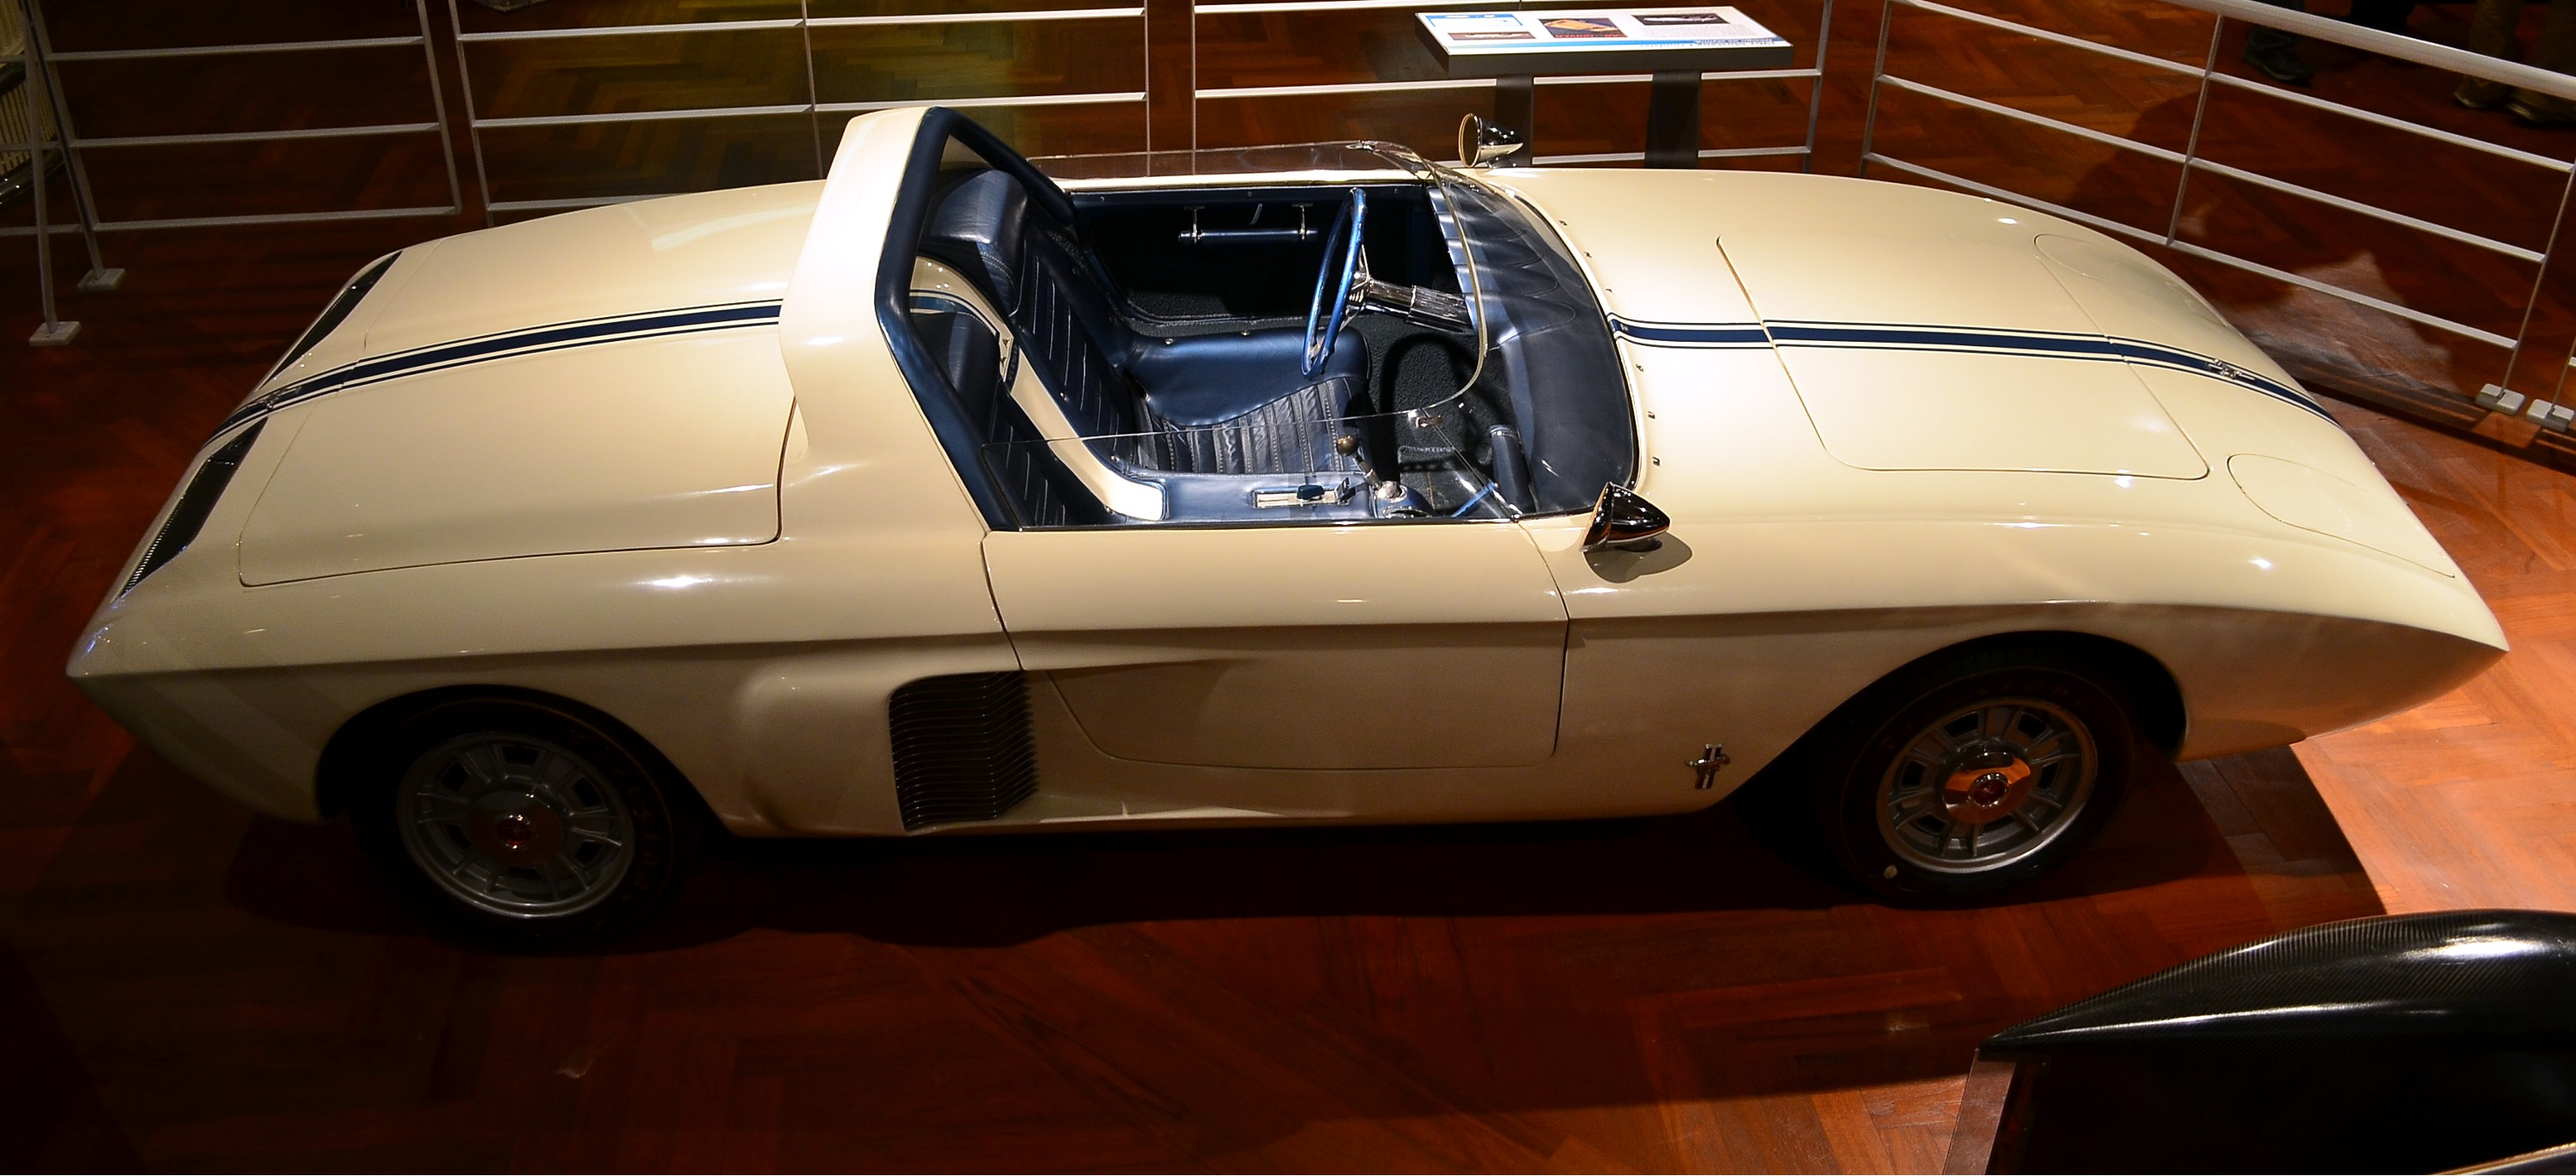 1962 Ford Mustang Roadster Concept Car photo - 1